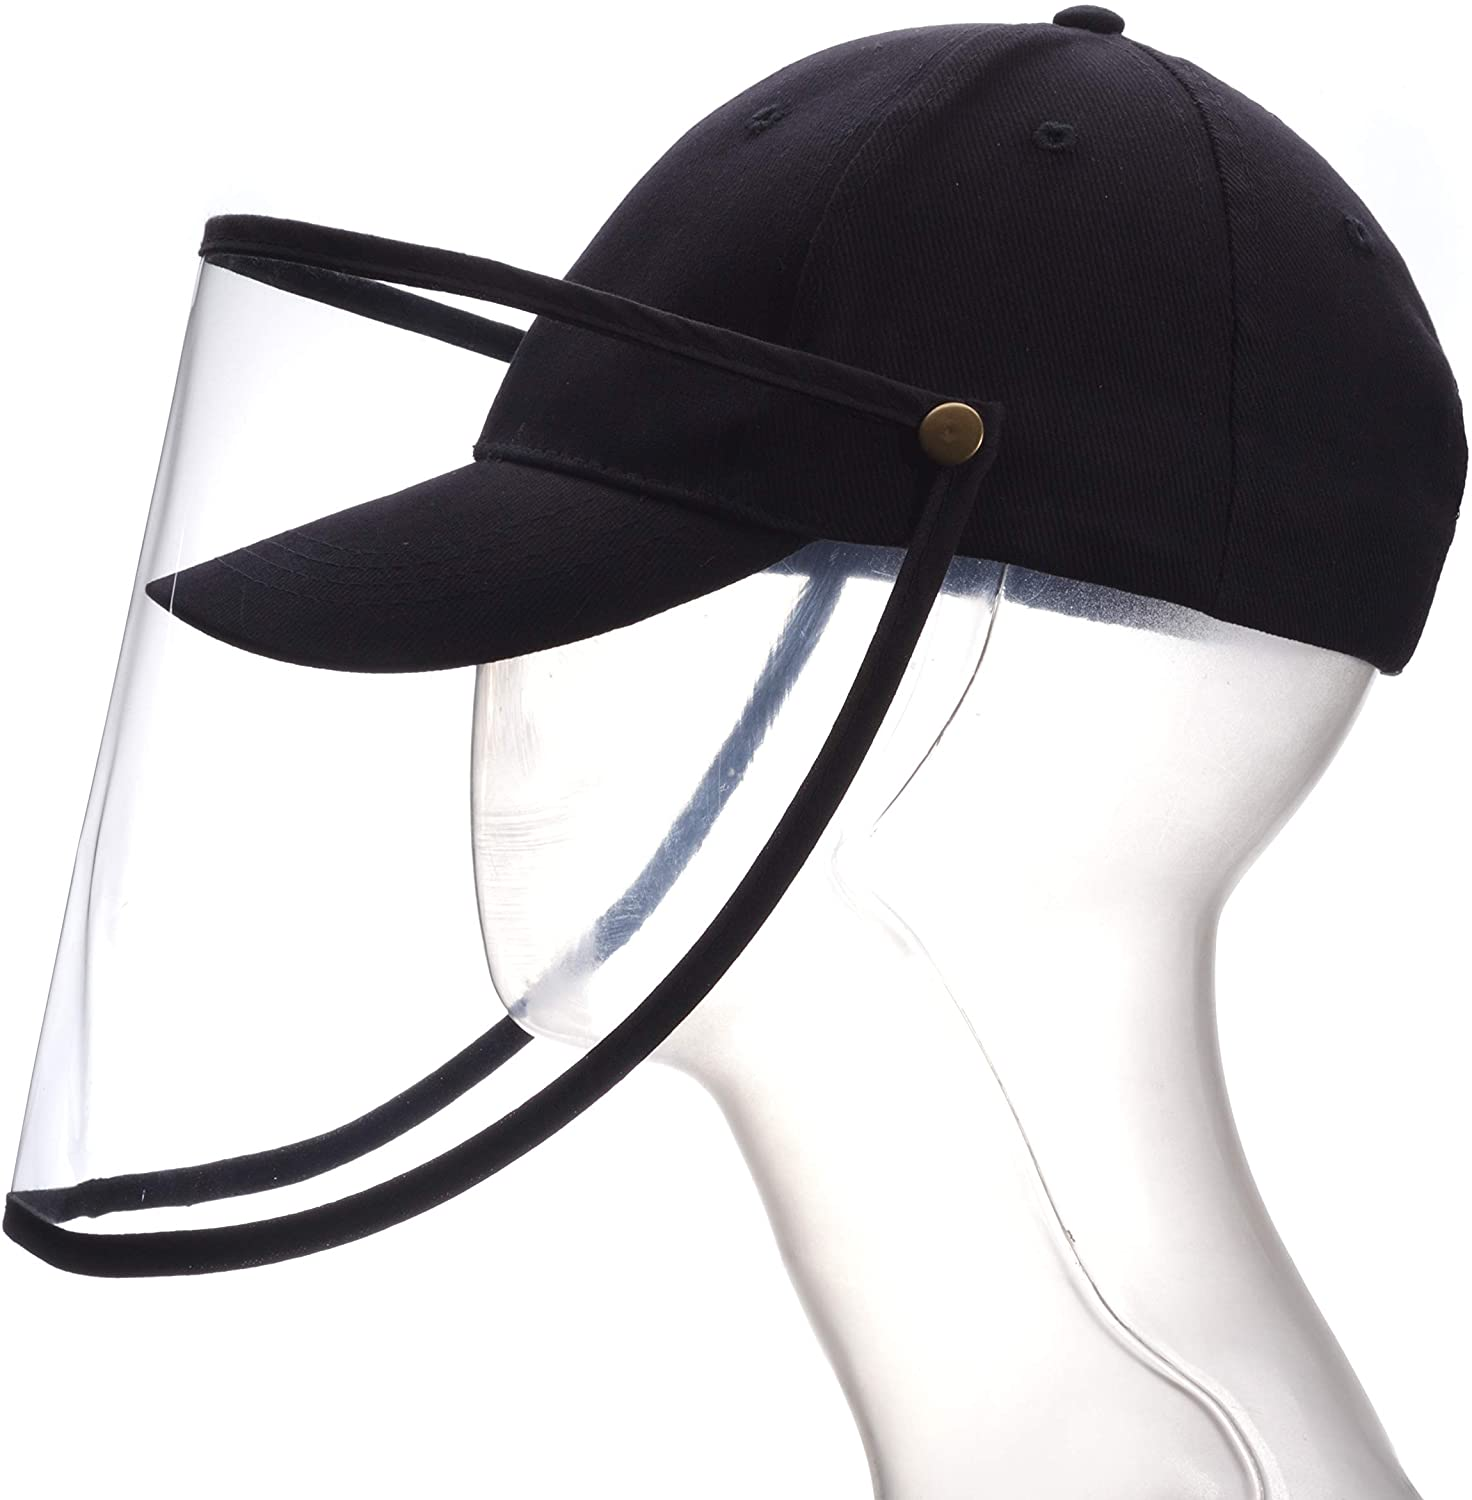 Baseball Cap with Full Face Protective Shield with Removable Protection Plate, Windproof Dustproof, Anti Spitting Safety Sun Hat